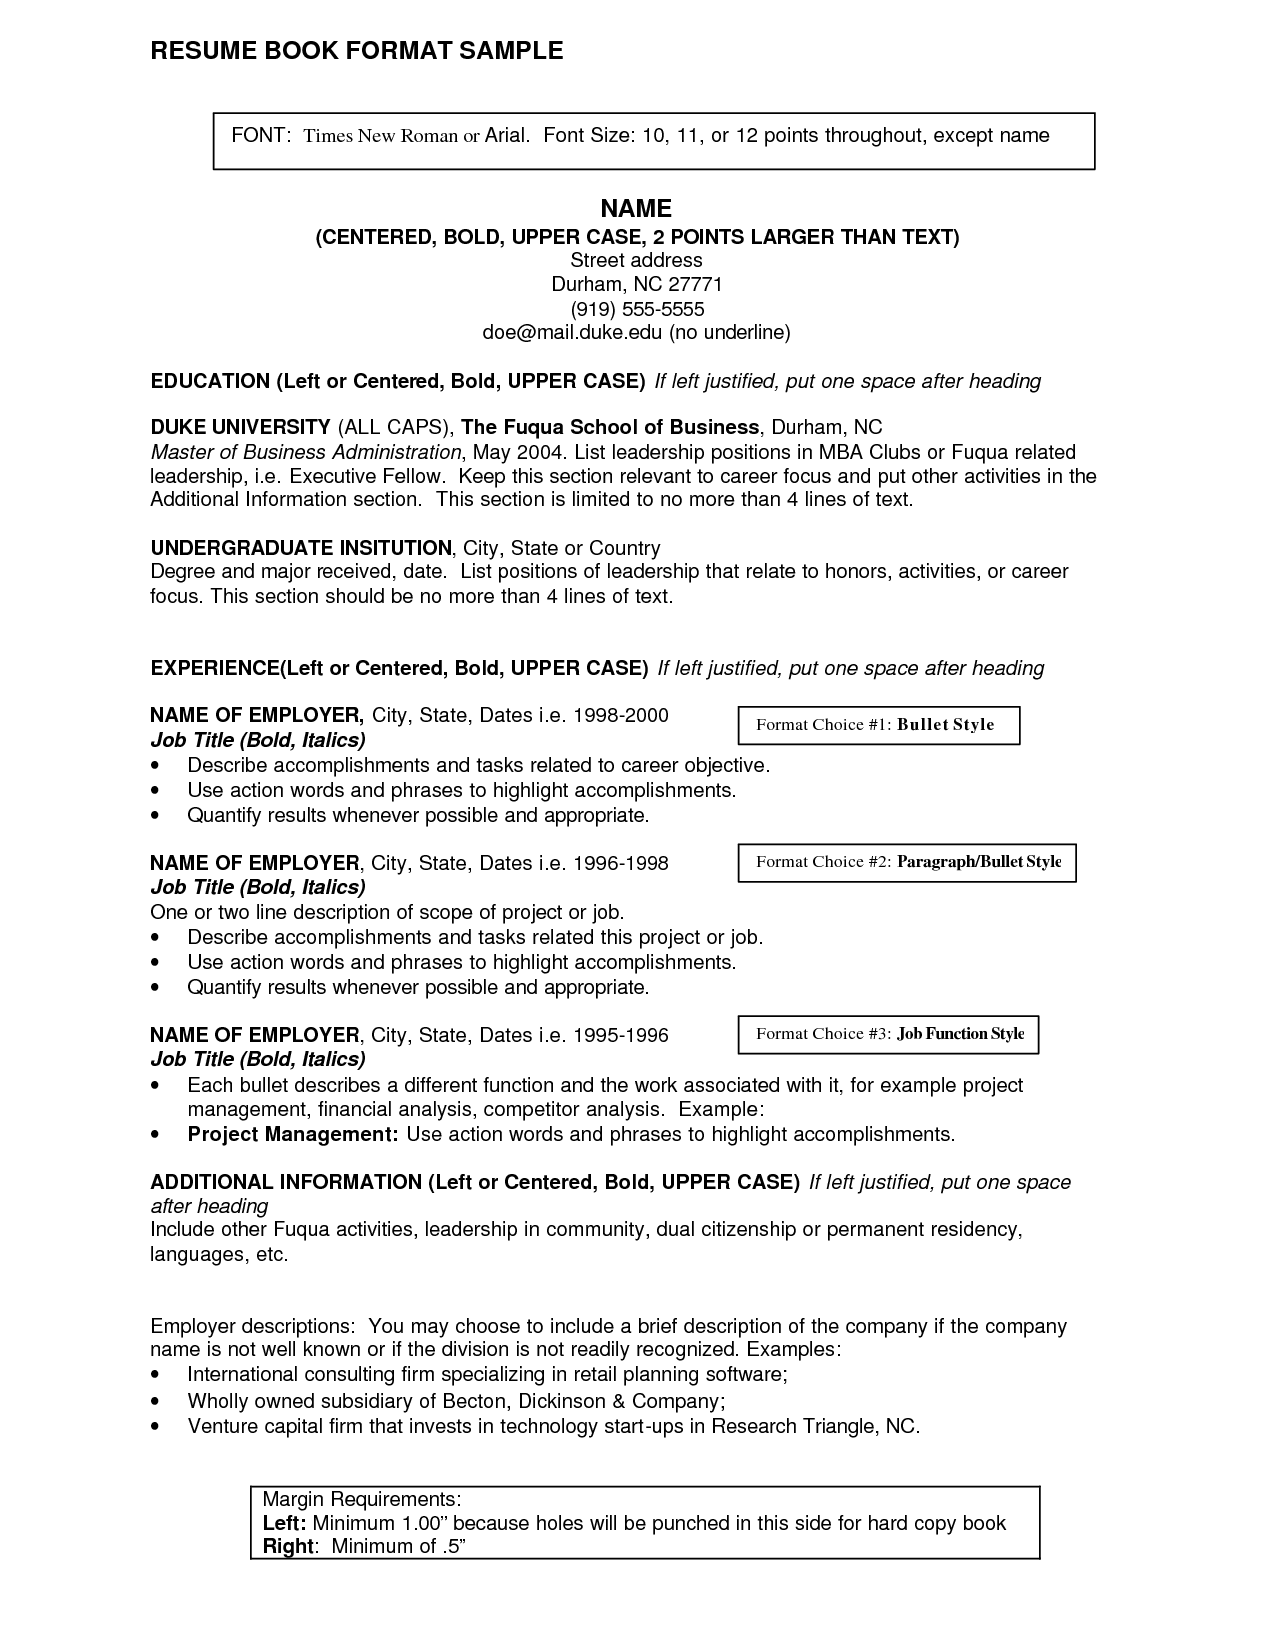 Brand ambassador resume sample inspiration decoration examples sample format for sending resume through email how send names cover letter examples titles best free home design idea inspiration madrichimfo Gallery